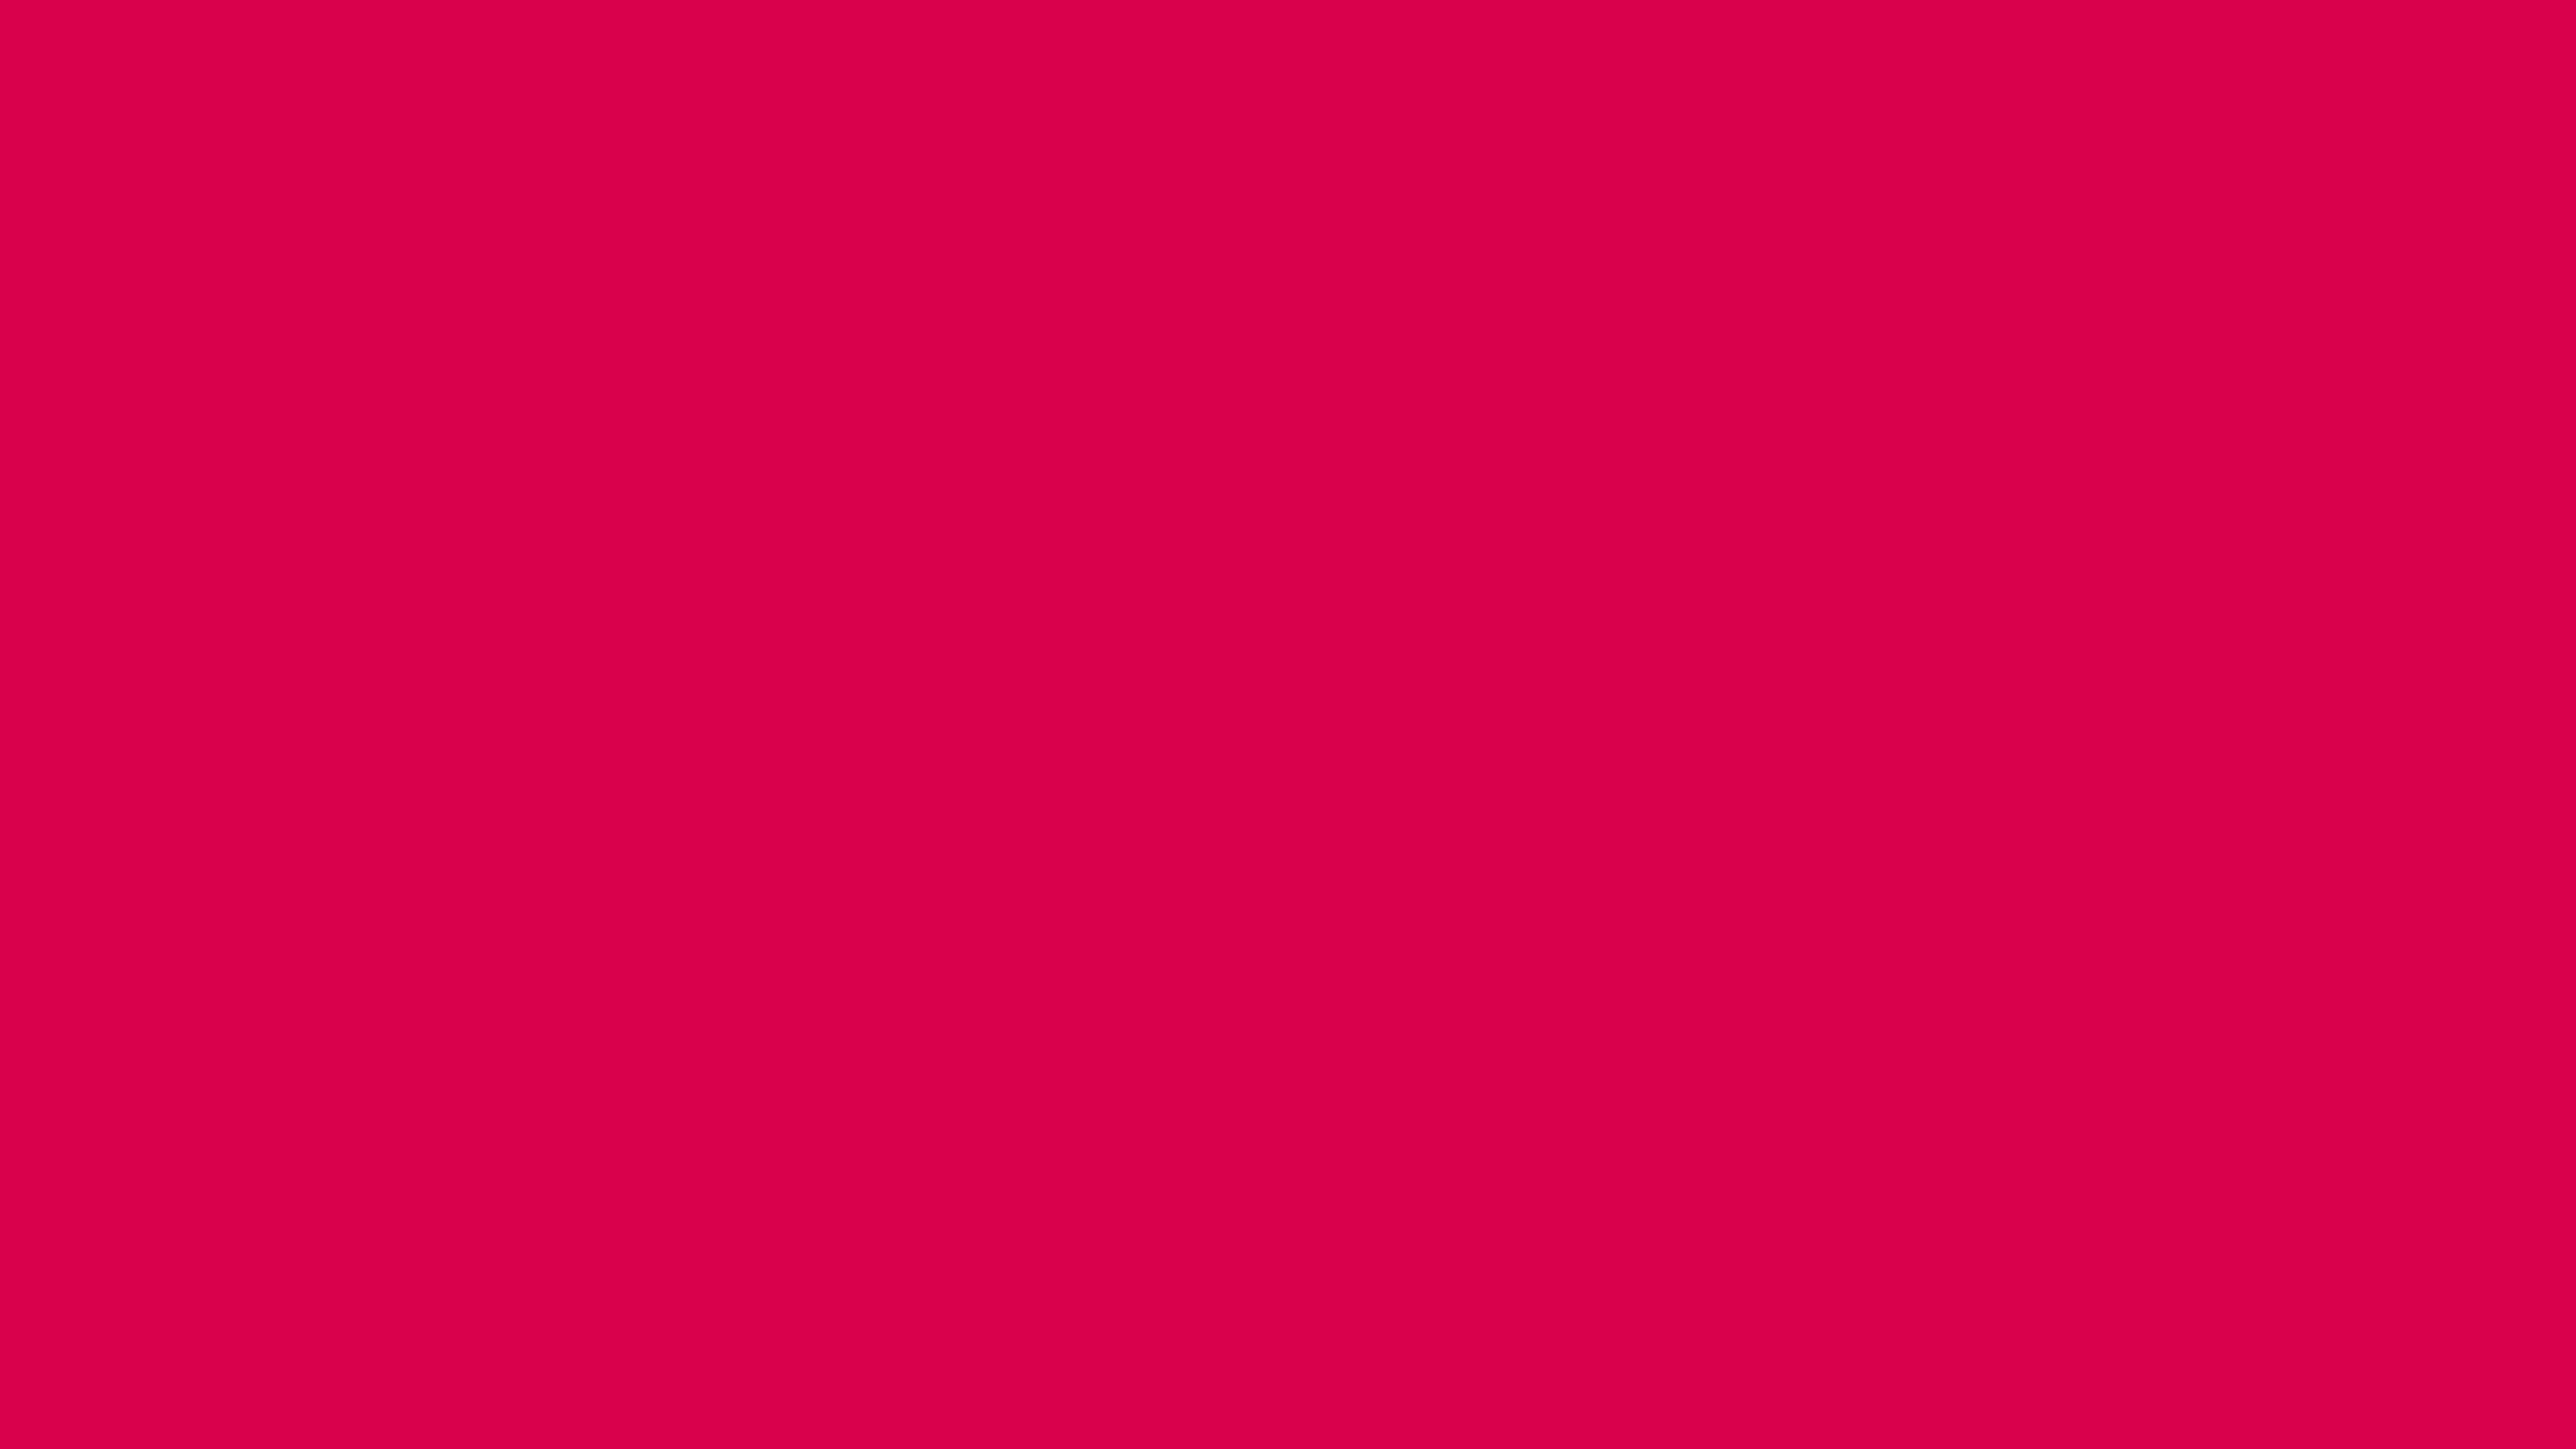 3840x2160 UA Red Solid Color Background